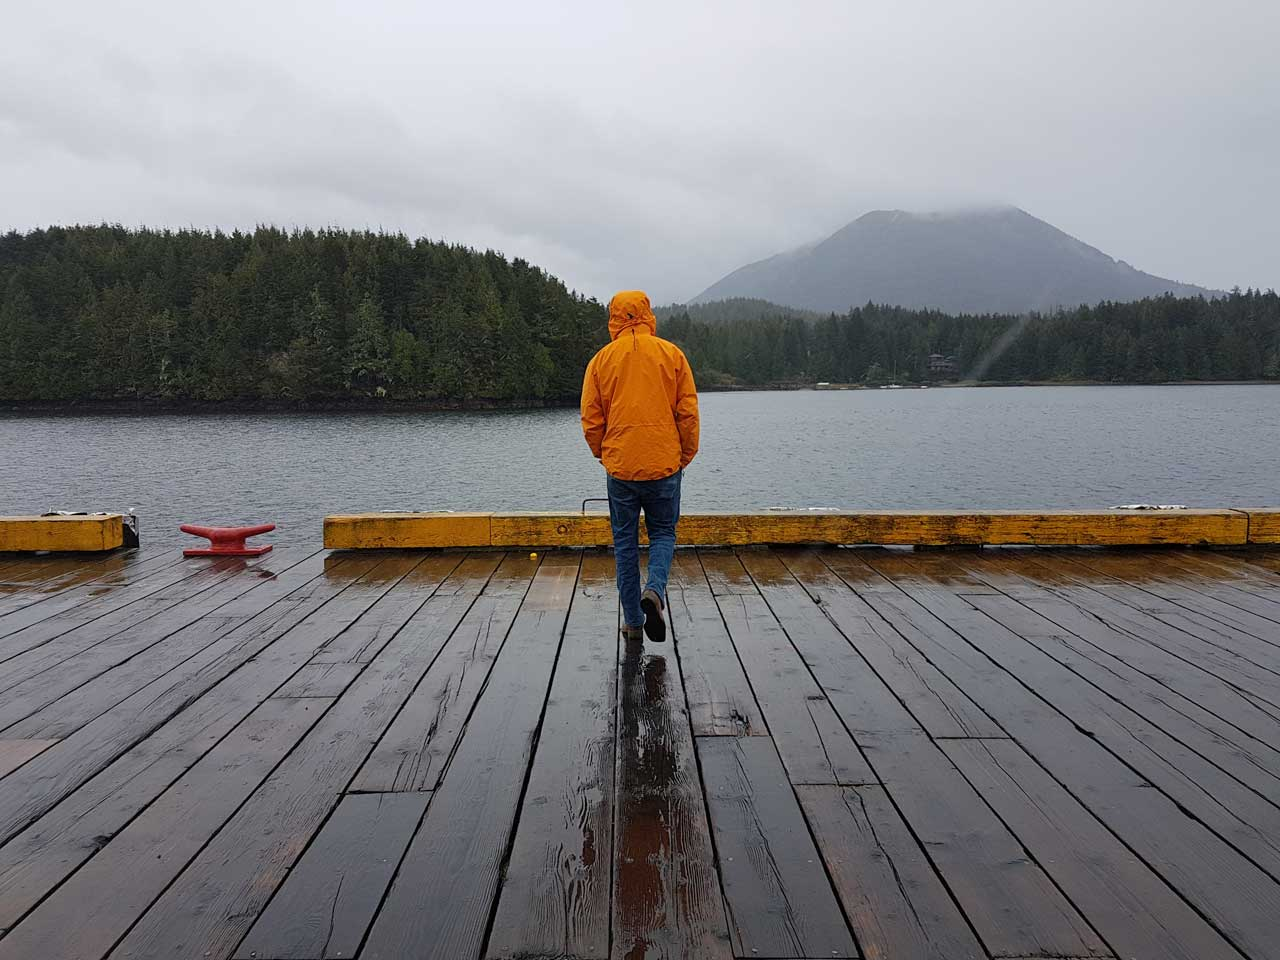 Man in orange rain coat standing on dock with ocean in background on rainy day